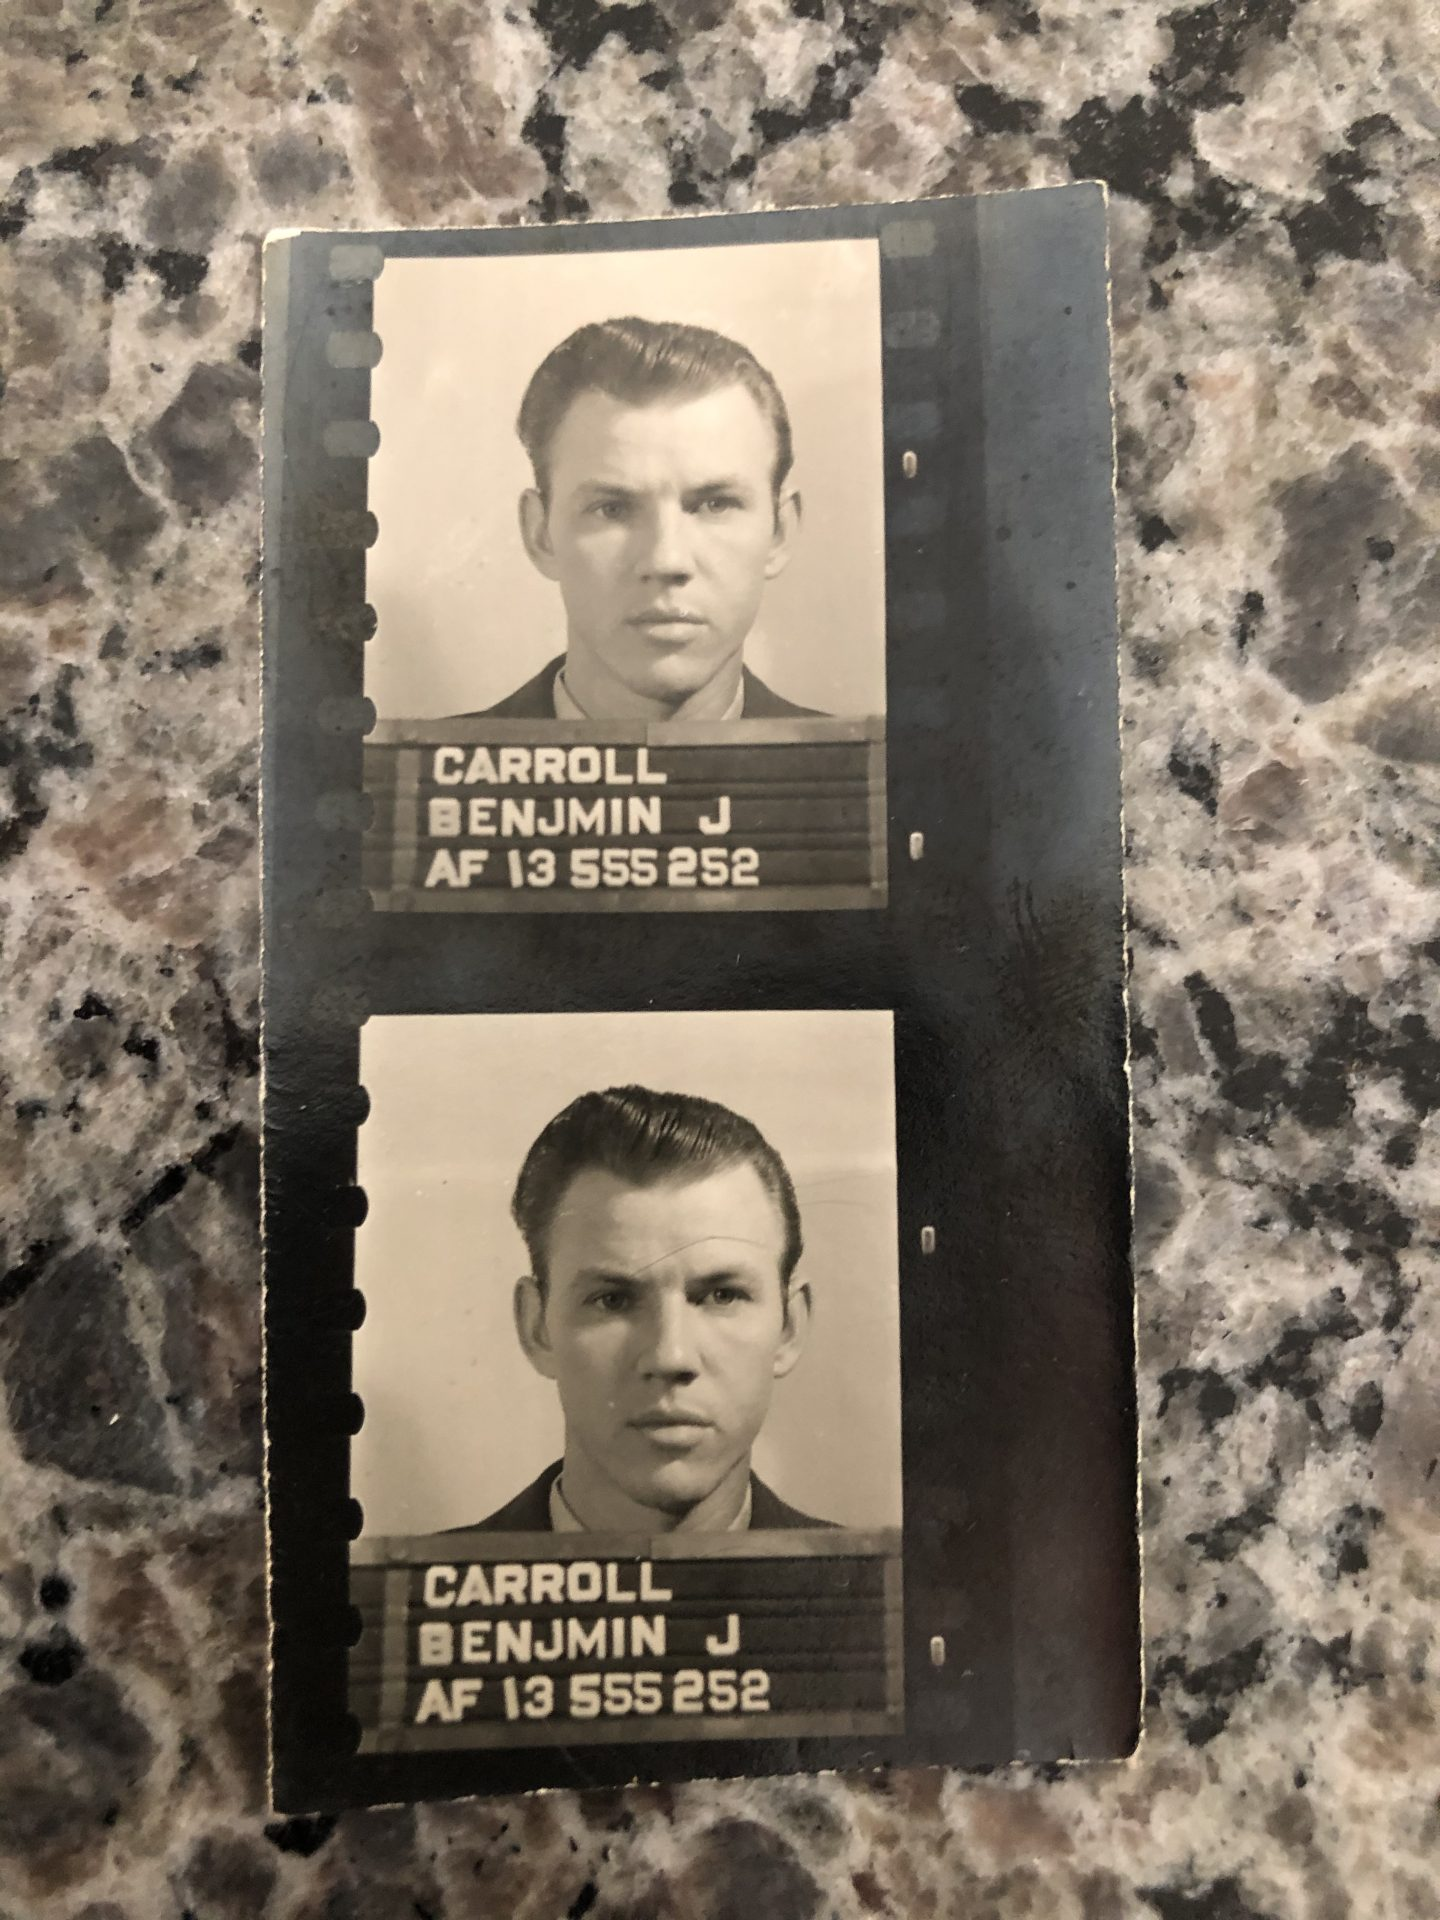 Dads Air Force passport photos I believe. Probably 1956 , 19 years old.GQRE